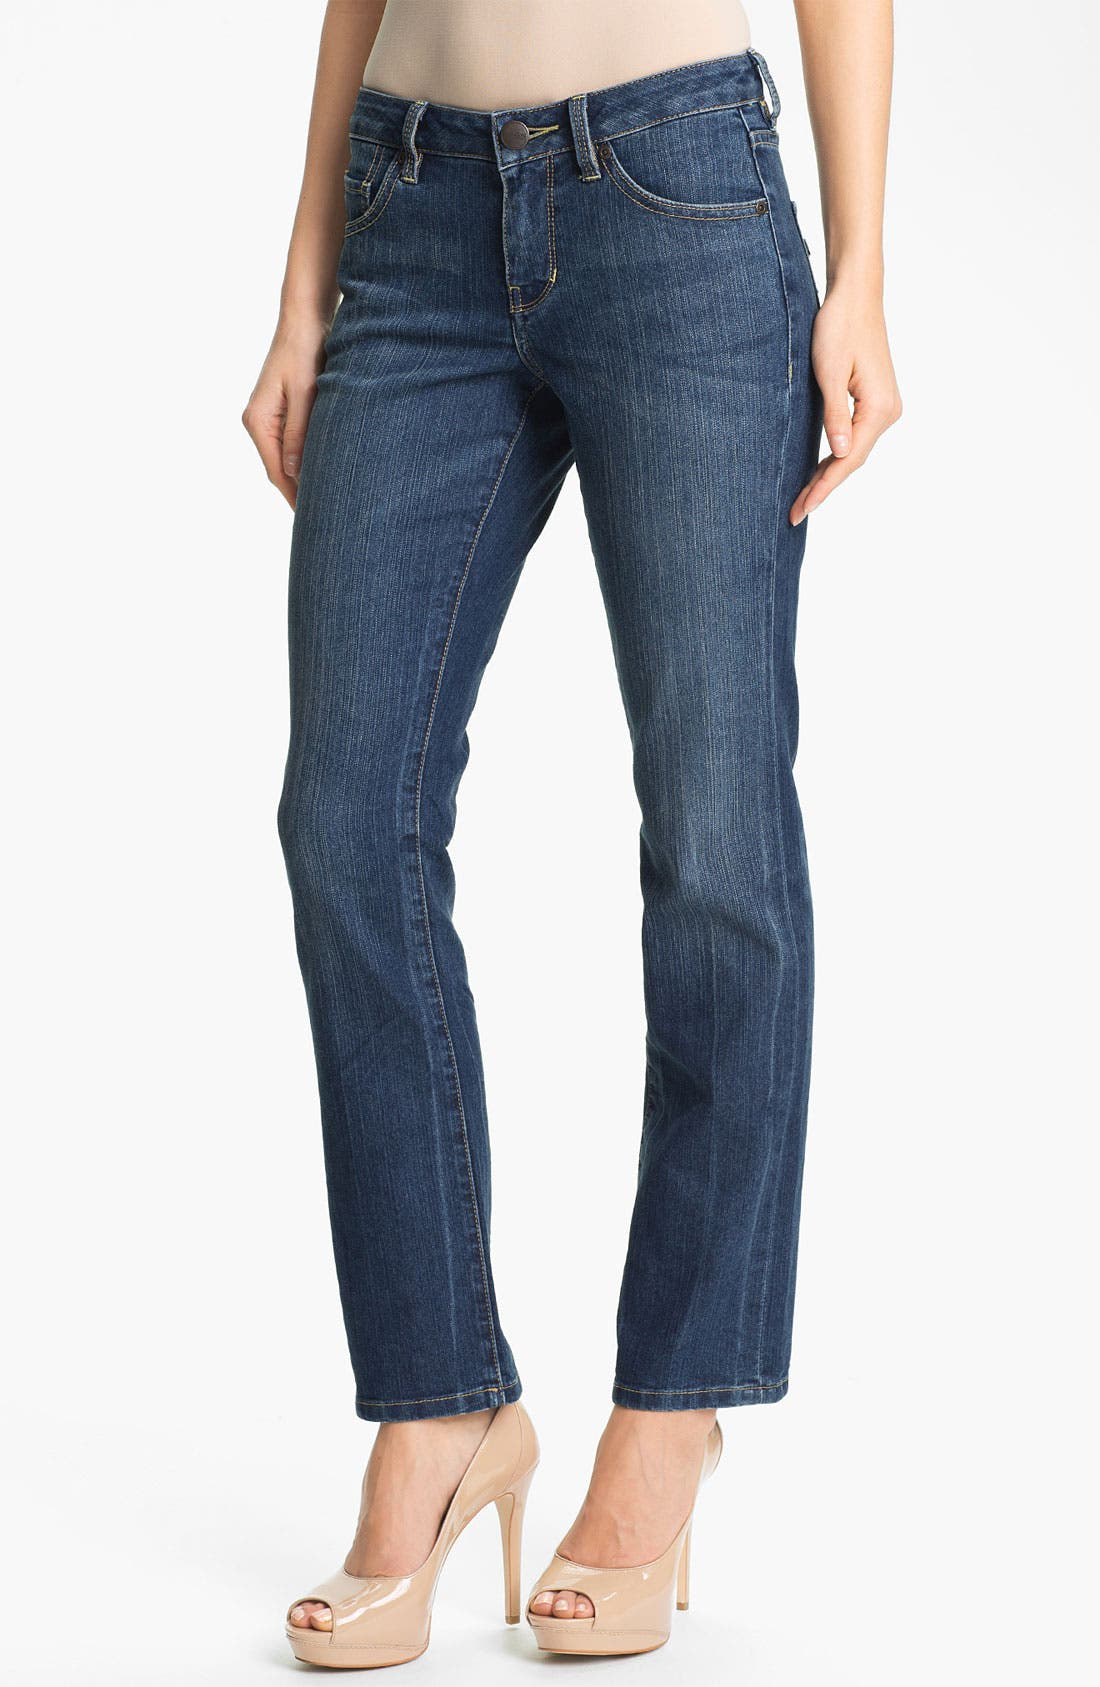 Alternate Image 1 Selected - Jag Jeans 'Lucy' Bootcut Stretch Jeans (Blue Raven) (Petite)